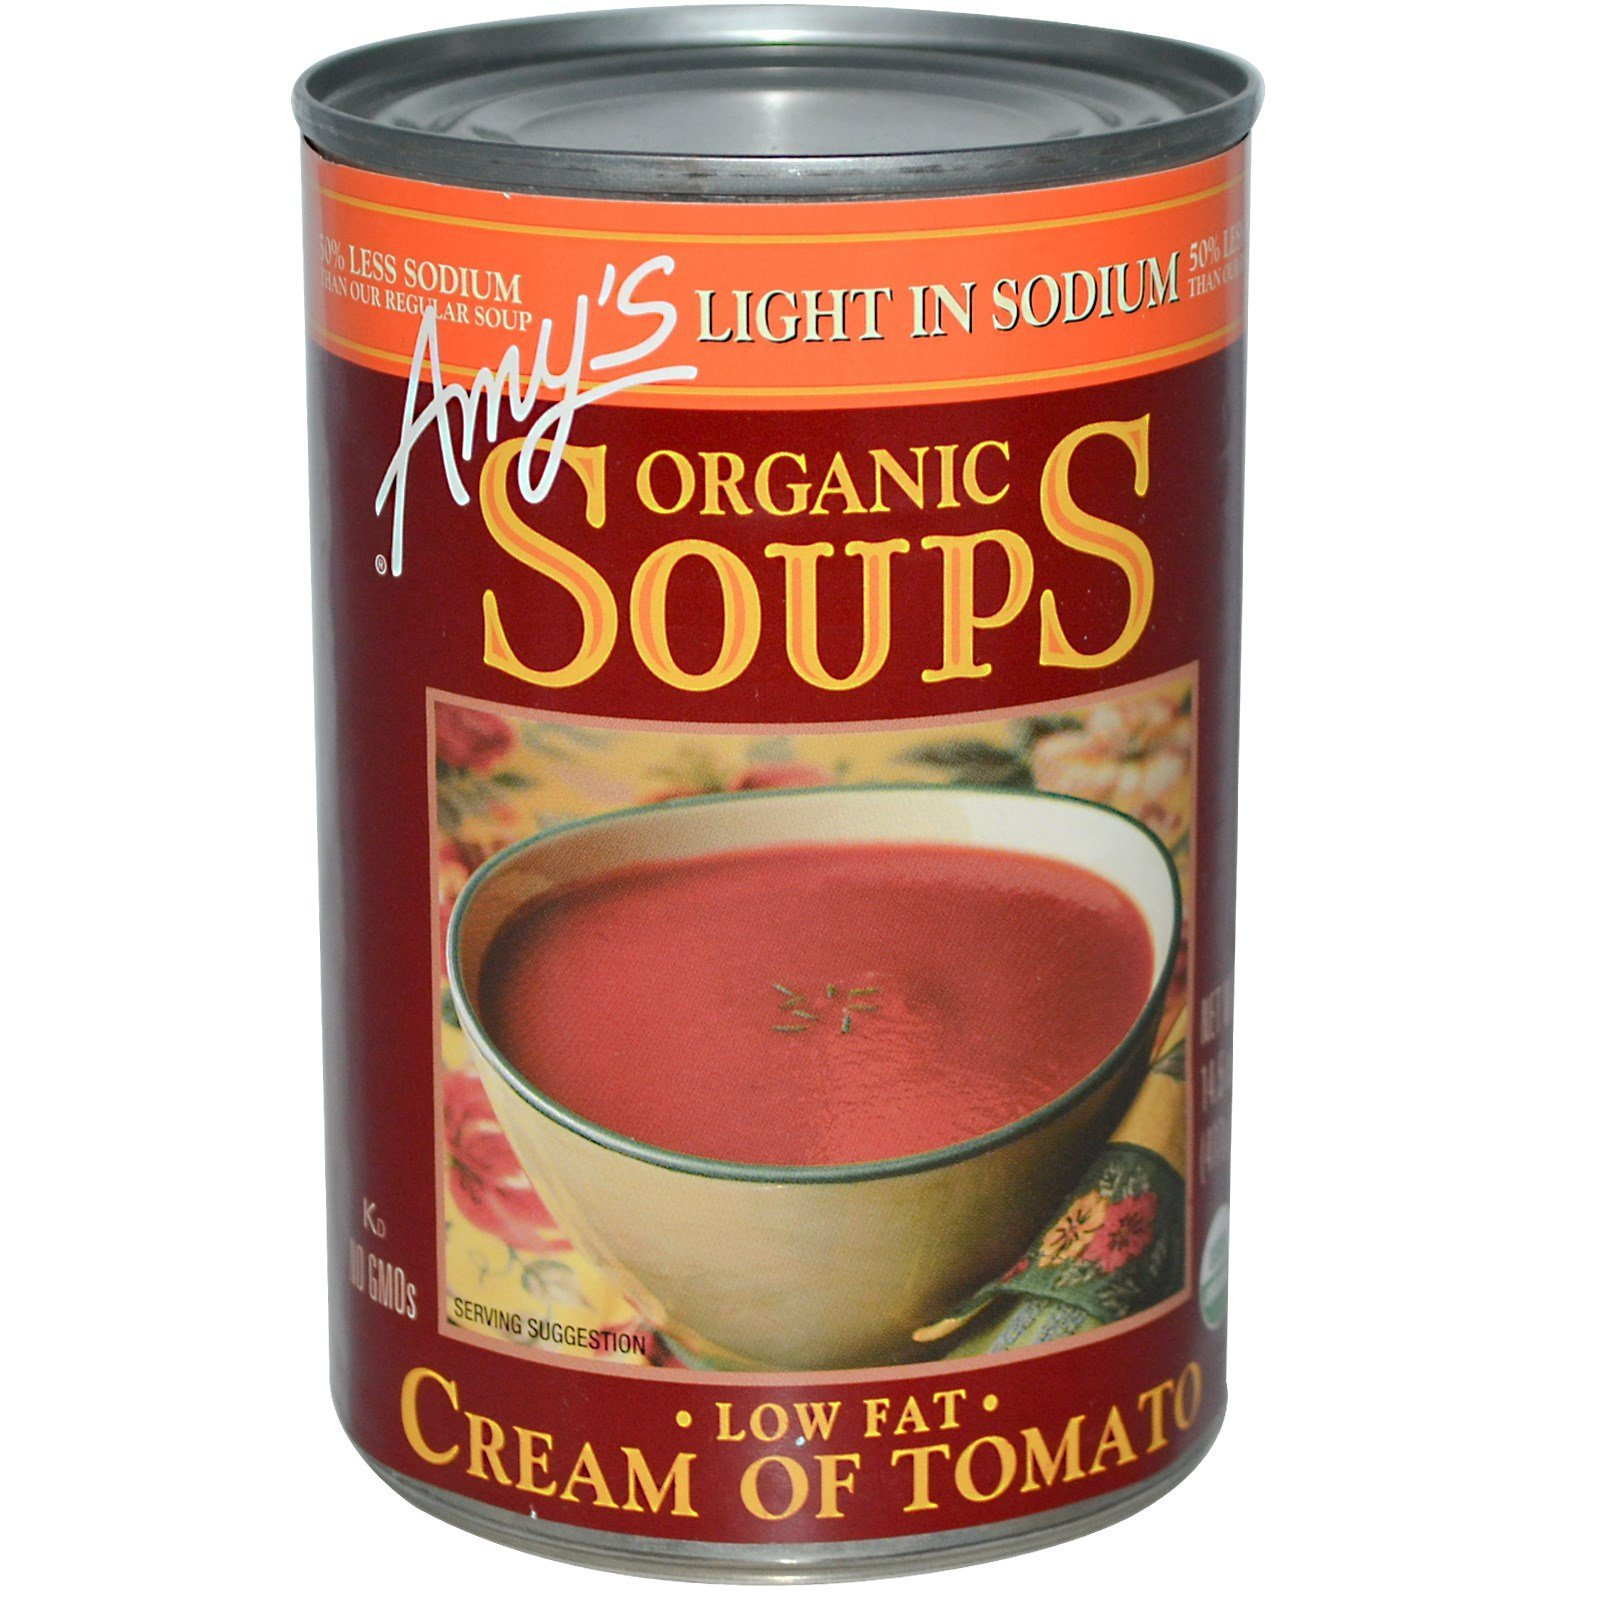 Amy's, Organic Soups, Low Fat Cream of Tomato, Light in Sodium, 14.5 oz (411 g)(Pack of 4)